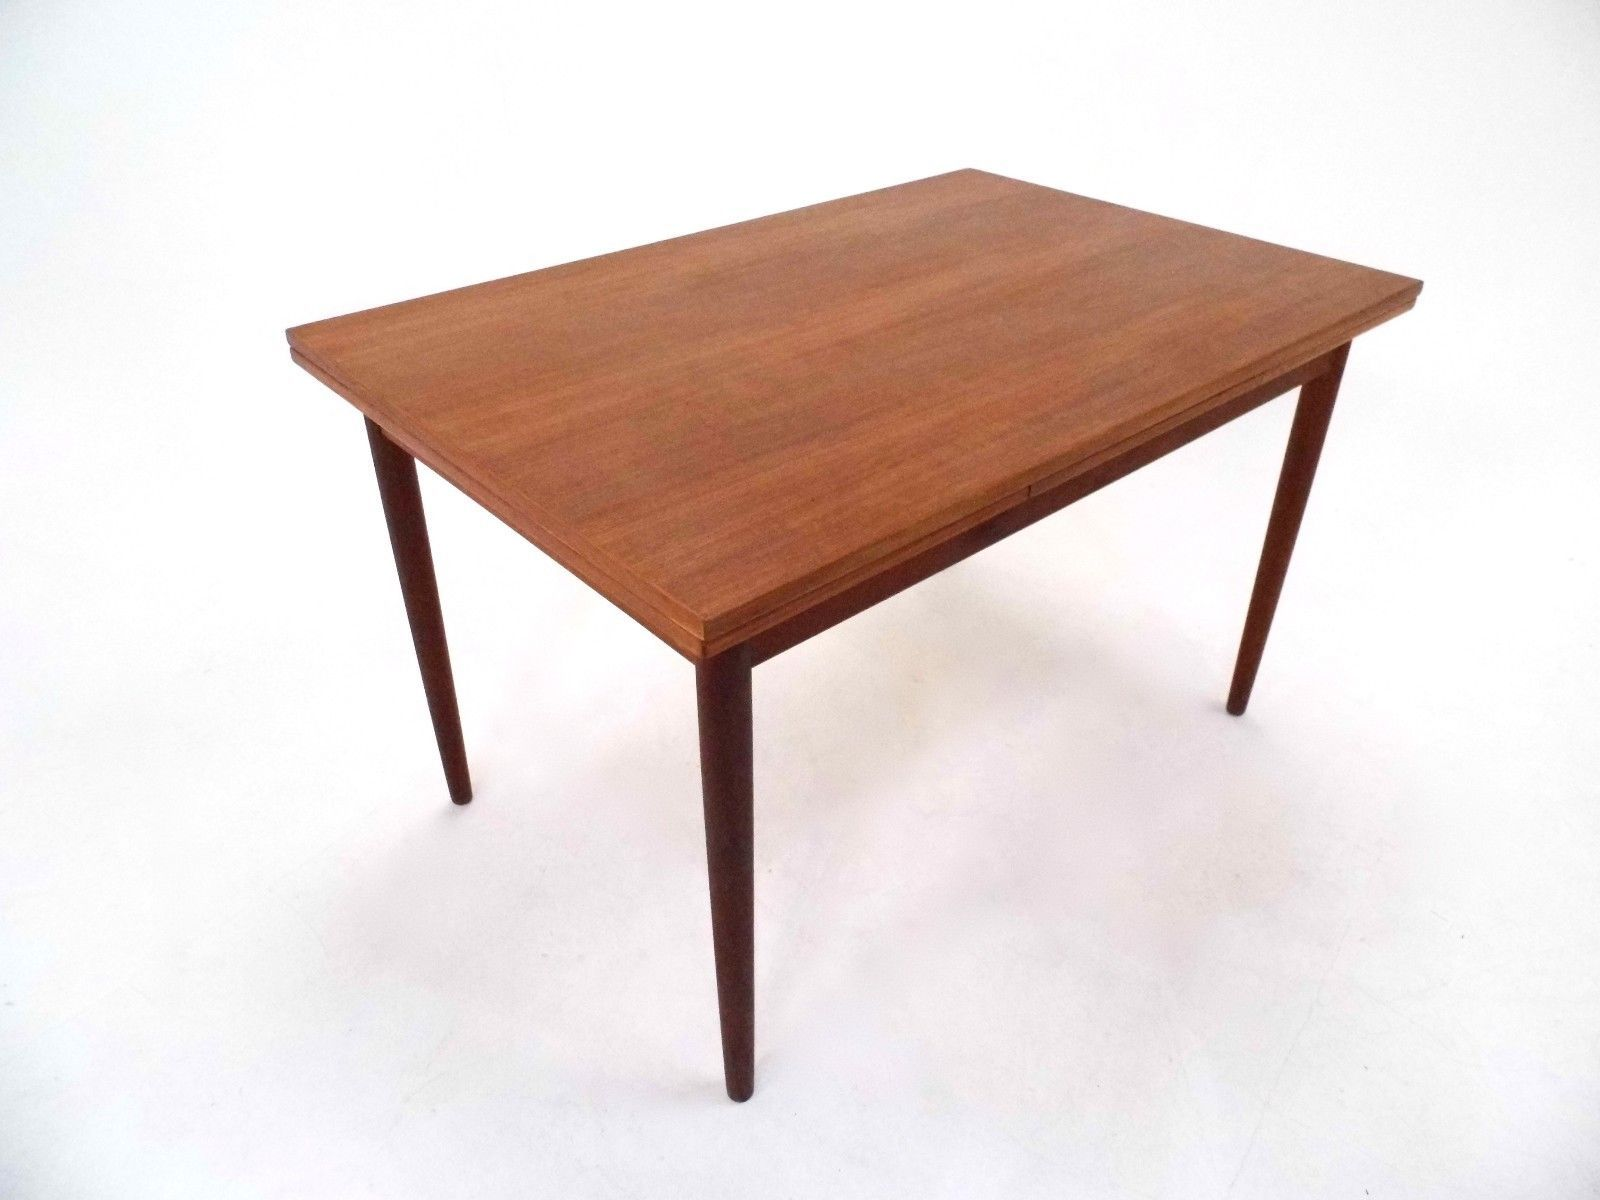 Danish Teak Extending Dining Table 1960s for sale at Pamono